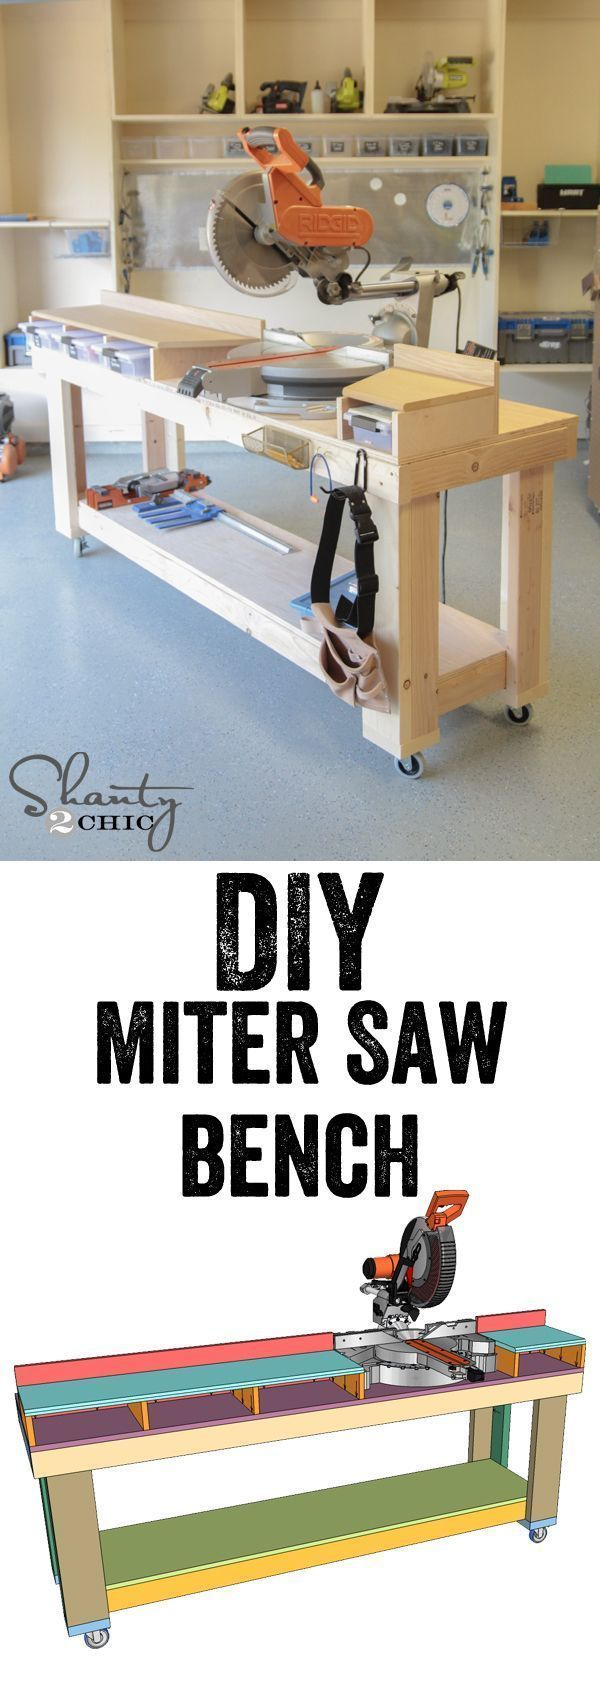 This DIY miter saw bench is a beauty. Just follow the step-by-step instructions to build one for your workshop.